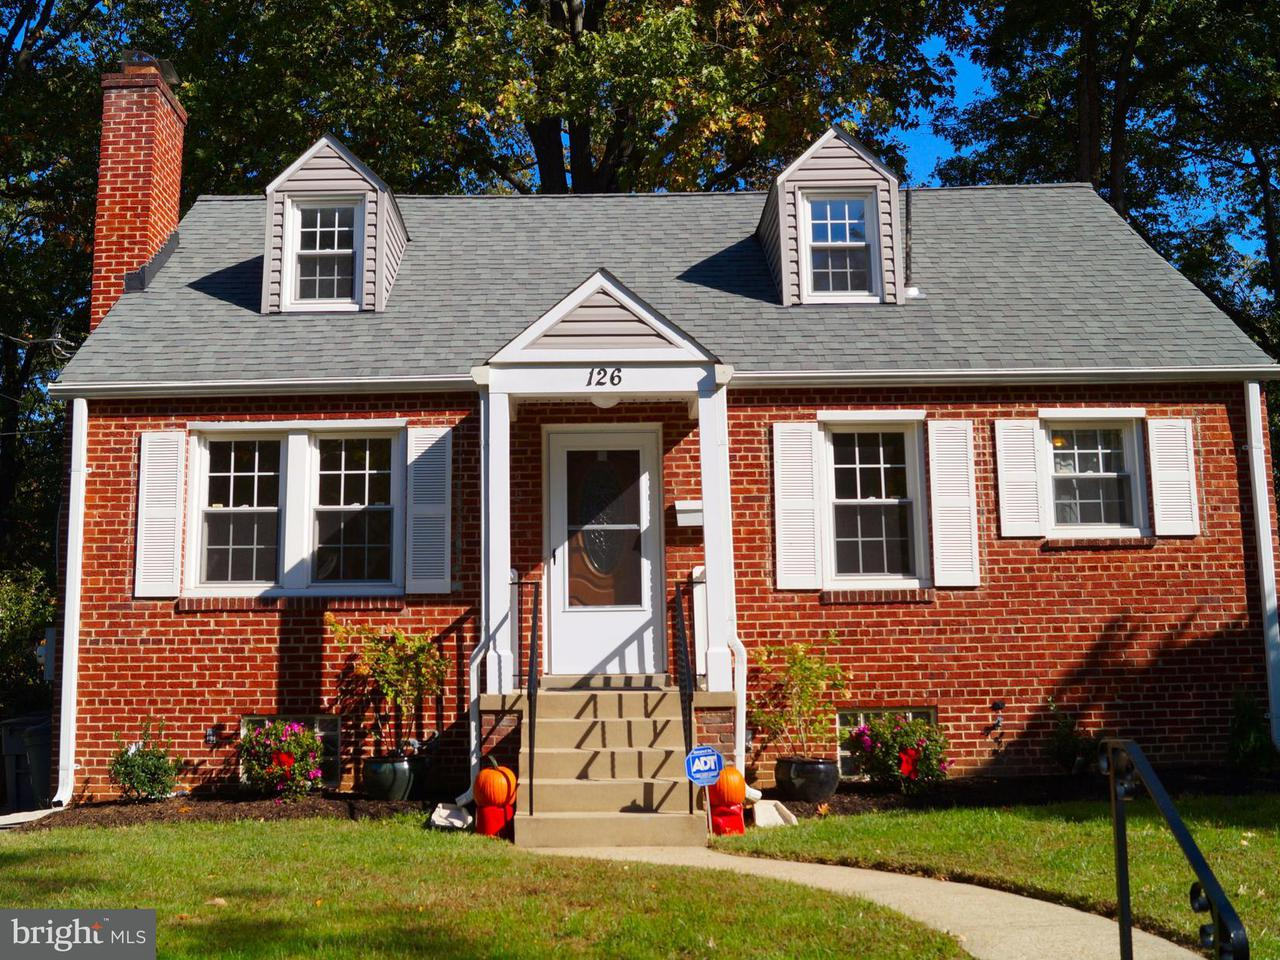 Single Family Home for Sale at 126 LYNNMOOR Drive 126 LYNNMOOR Drive Silver Spring, Maryland 20901 United States